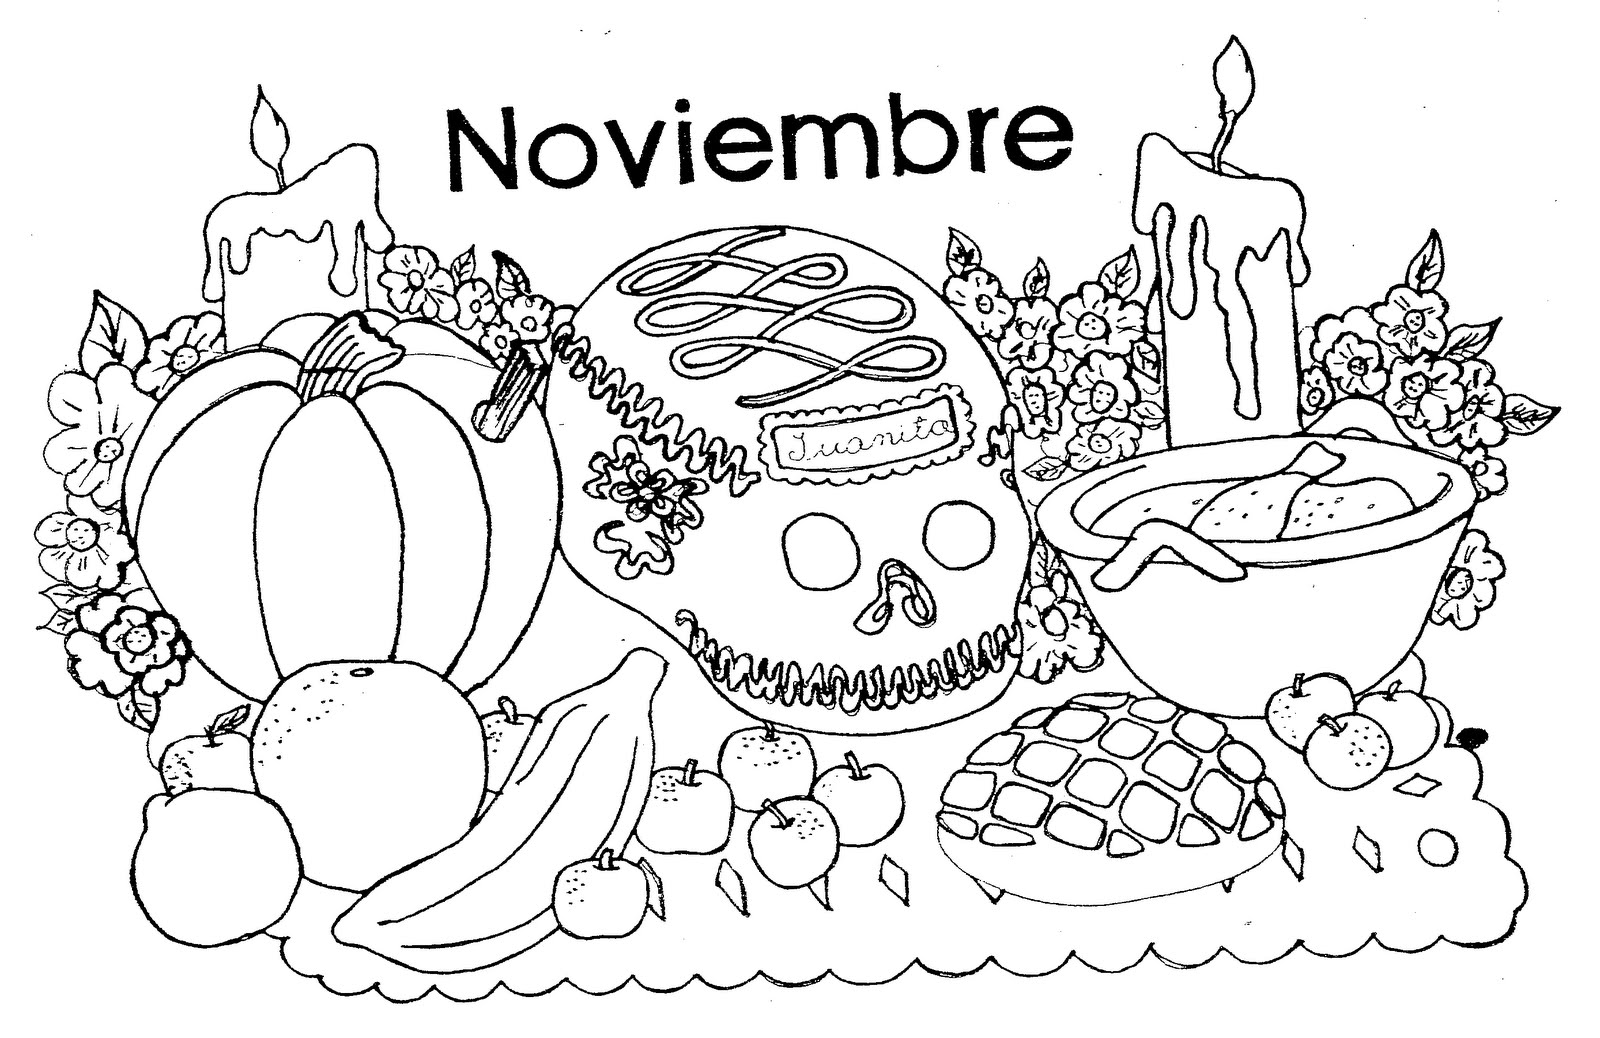 Dibujos Marinera Nortena Para Colorear IgKbGqgqR additionally Mandala 34 as well Dibujos Para Imprimir Y Colorear De Halloween moreover Mariposas Para Colorear additionally Dibujos De Los Reyes Magos Para. on fotos de portada para facebook mexicanas